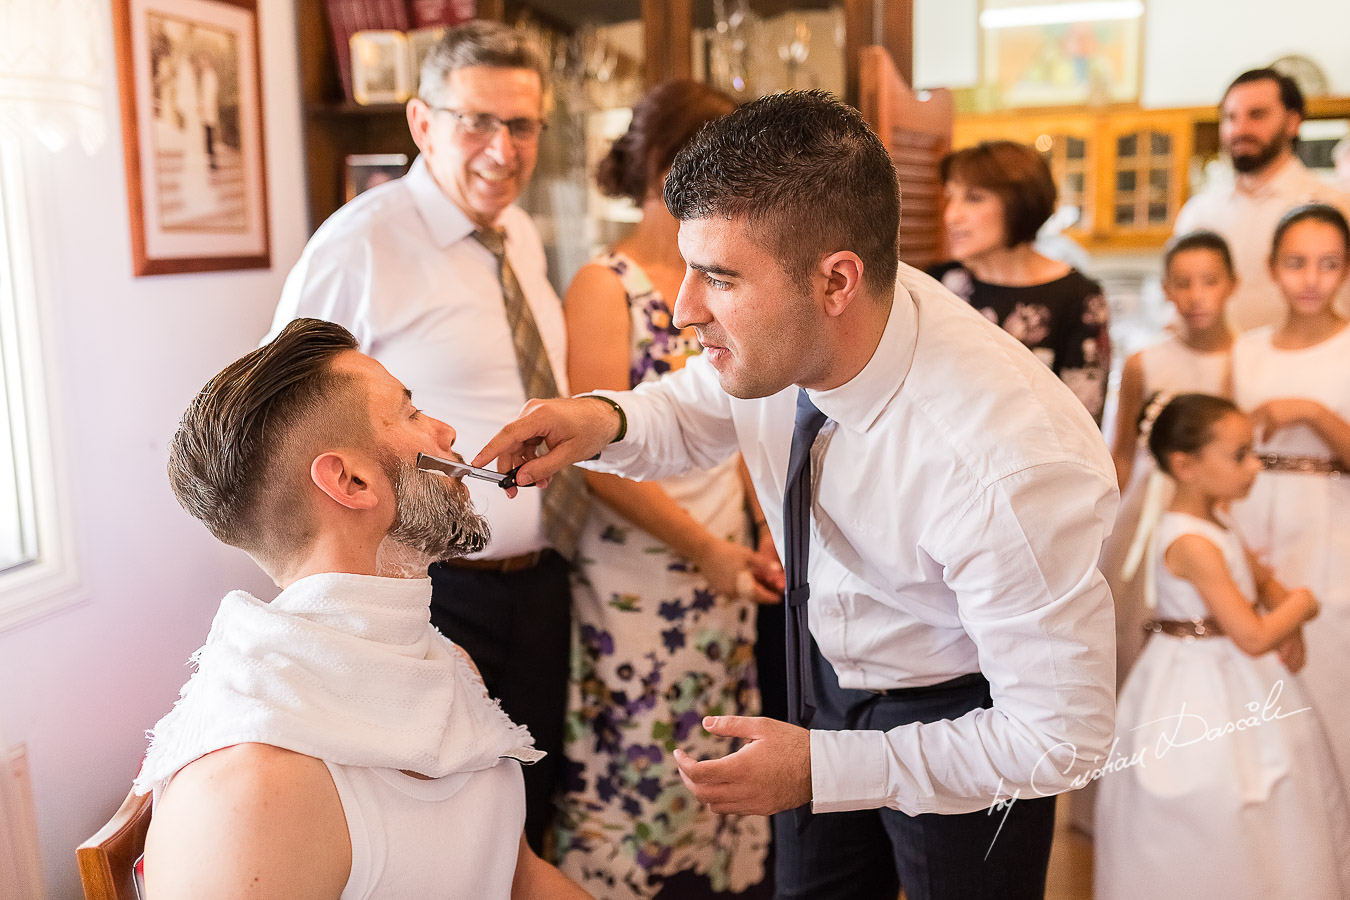 Groom's shave photographed at a wedding in Nicosia by Cyprus Wedding Photographer Cristian Dascalu